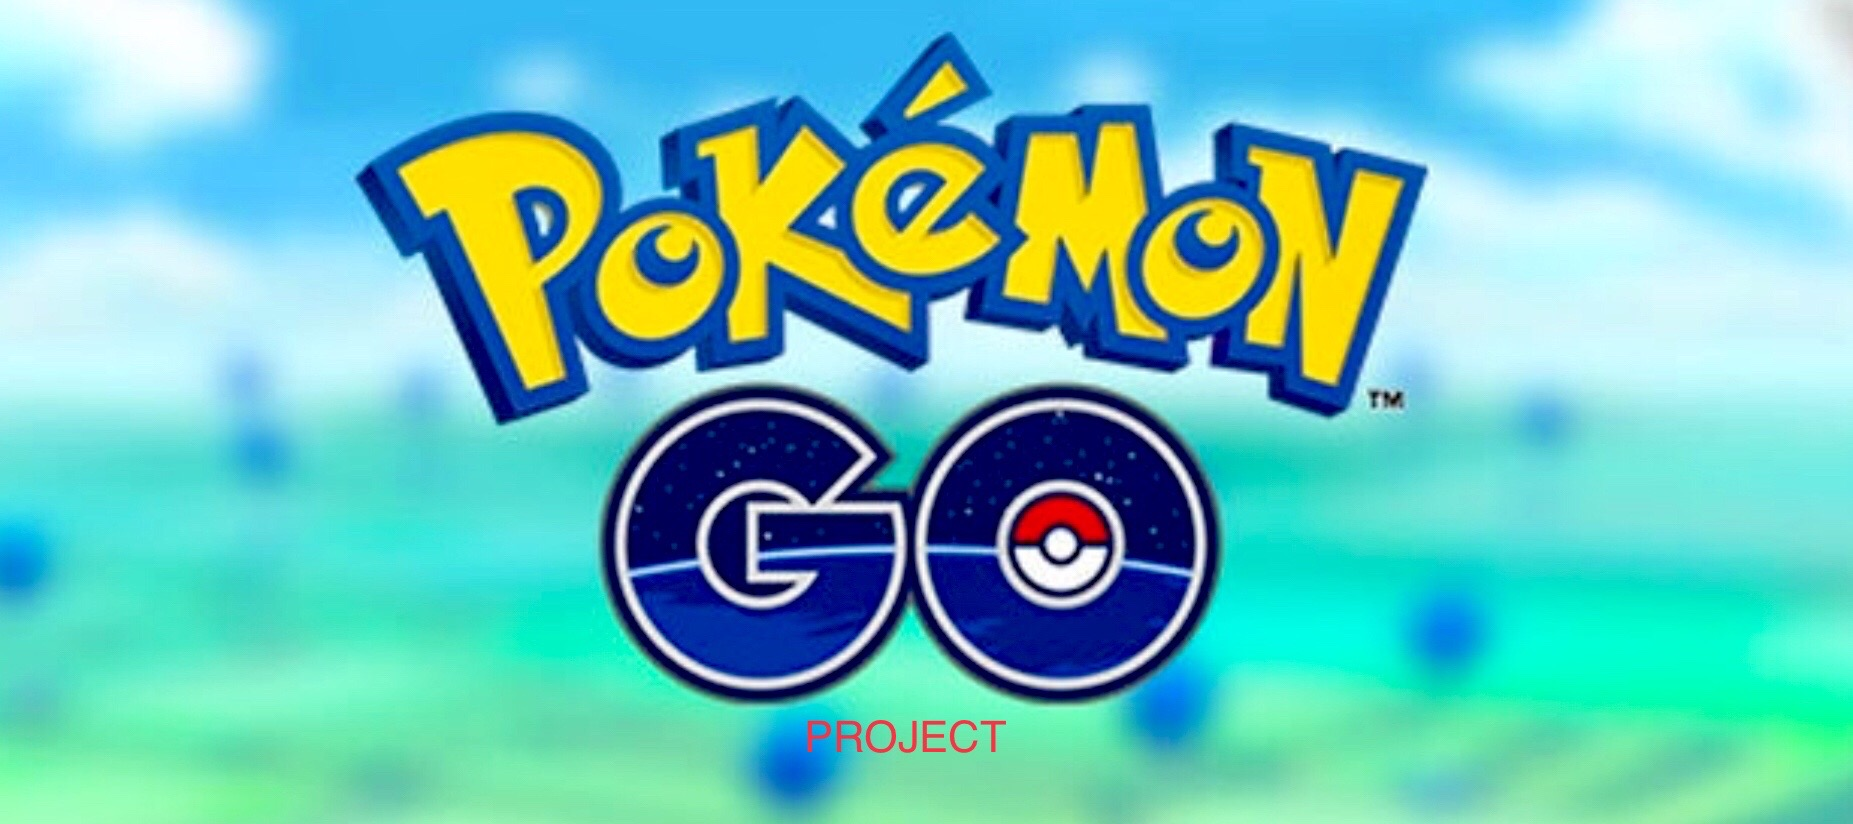 The Pokémon Go Project